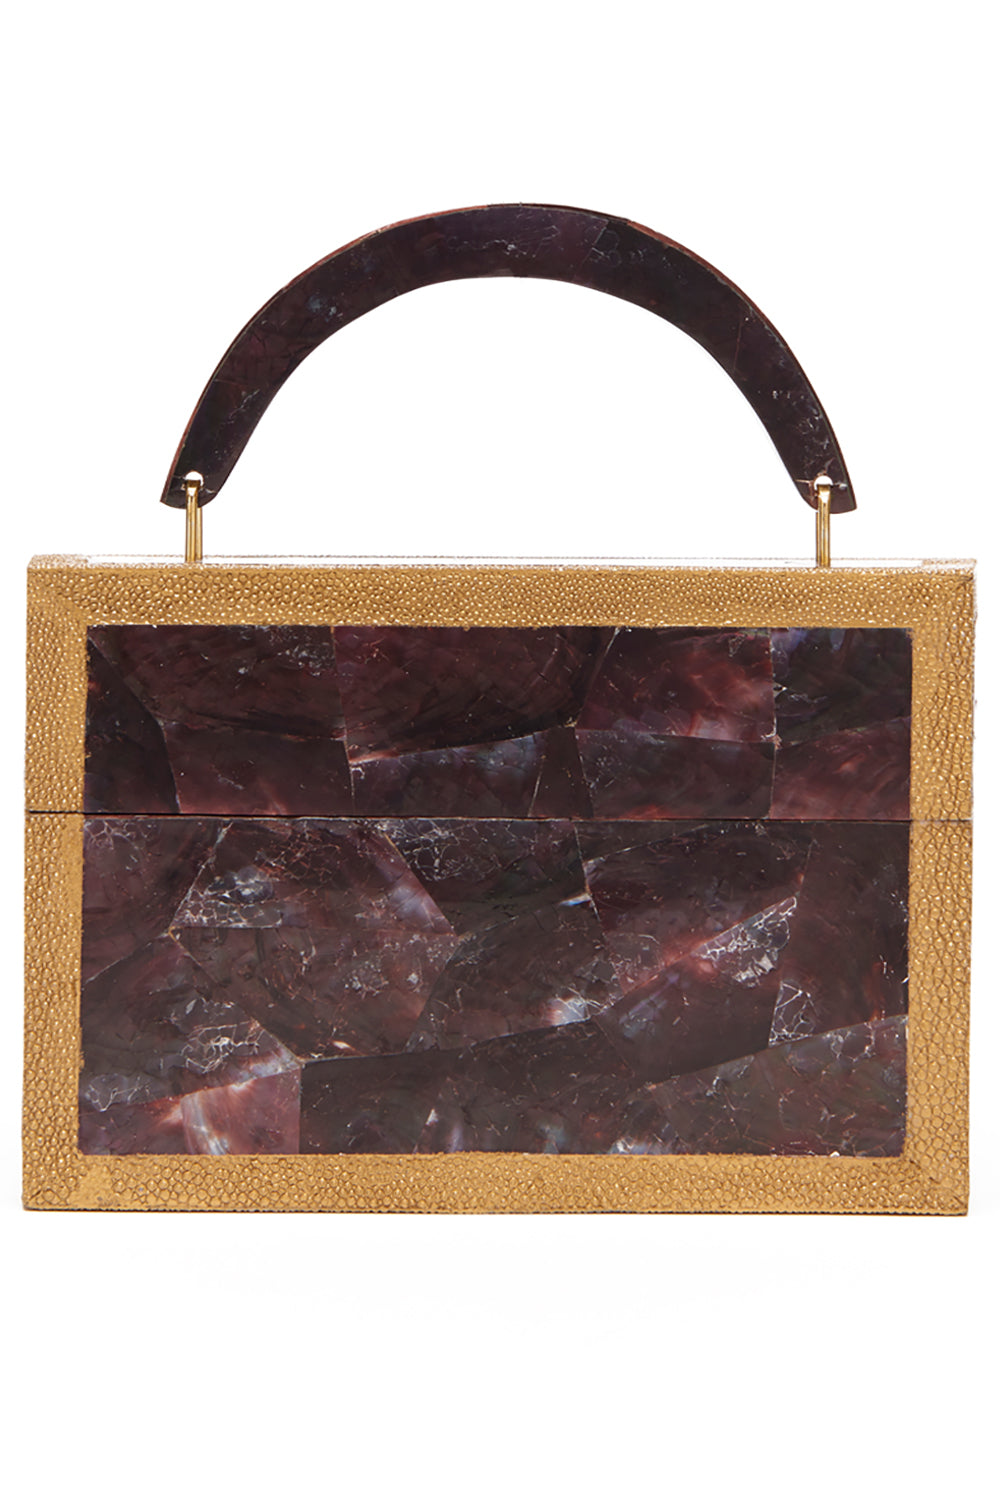 Arista Clutch in Burgundy Shell & Shagreen Trim